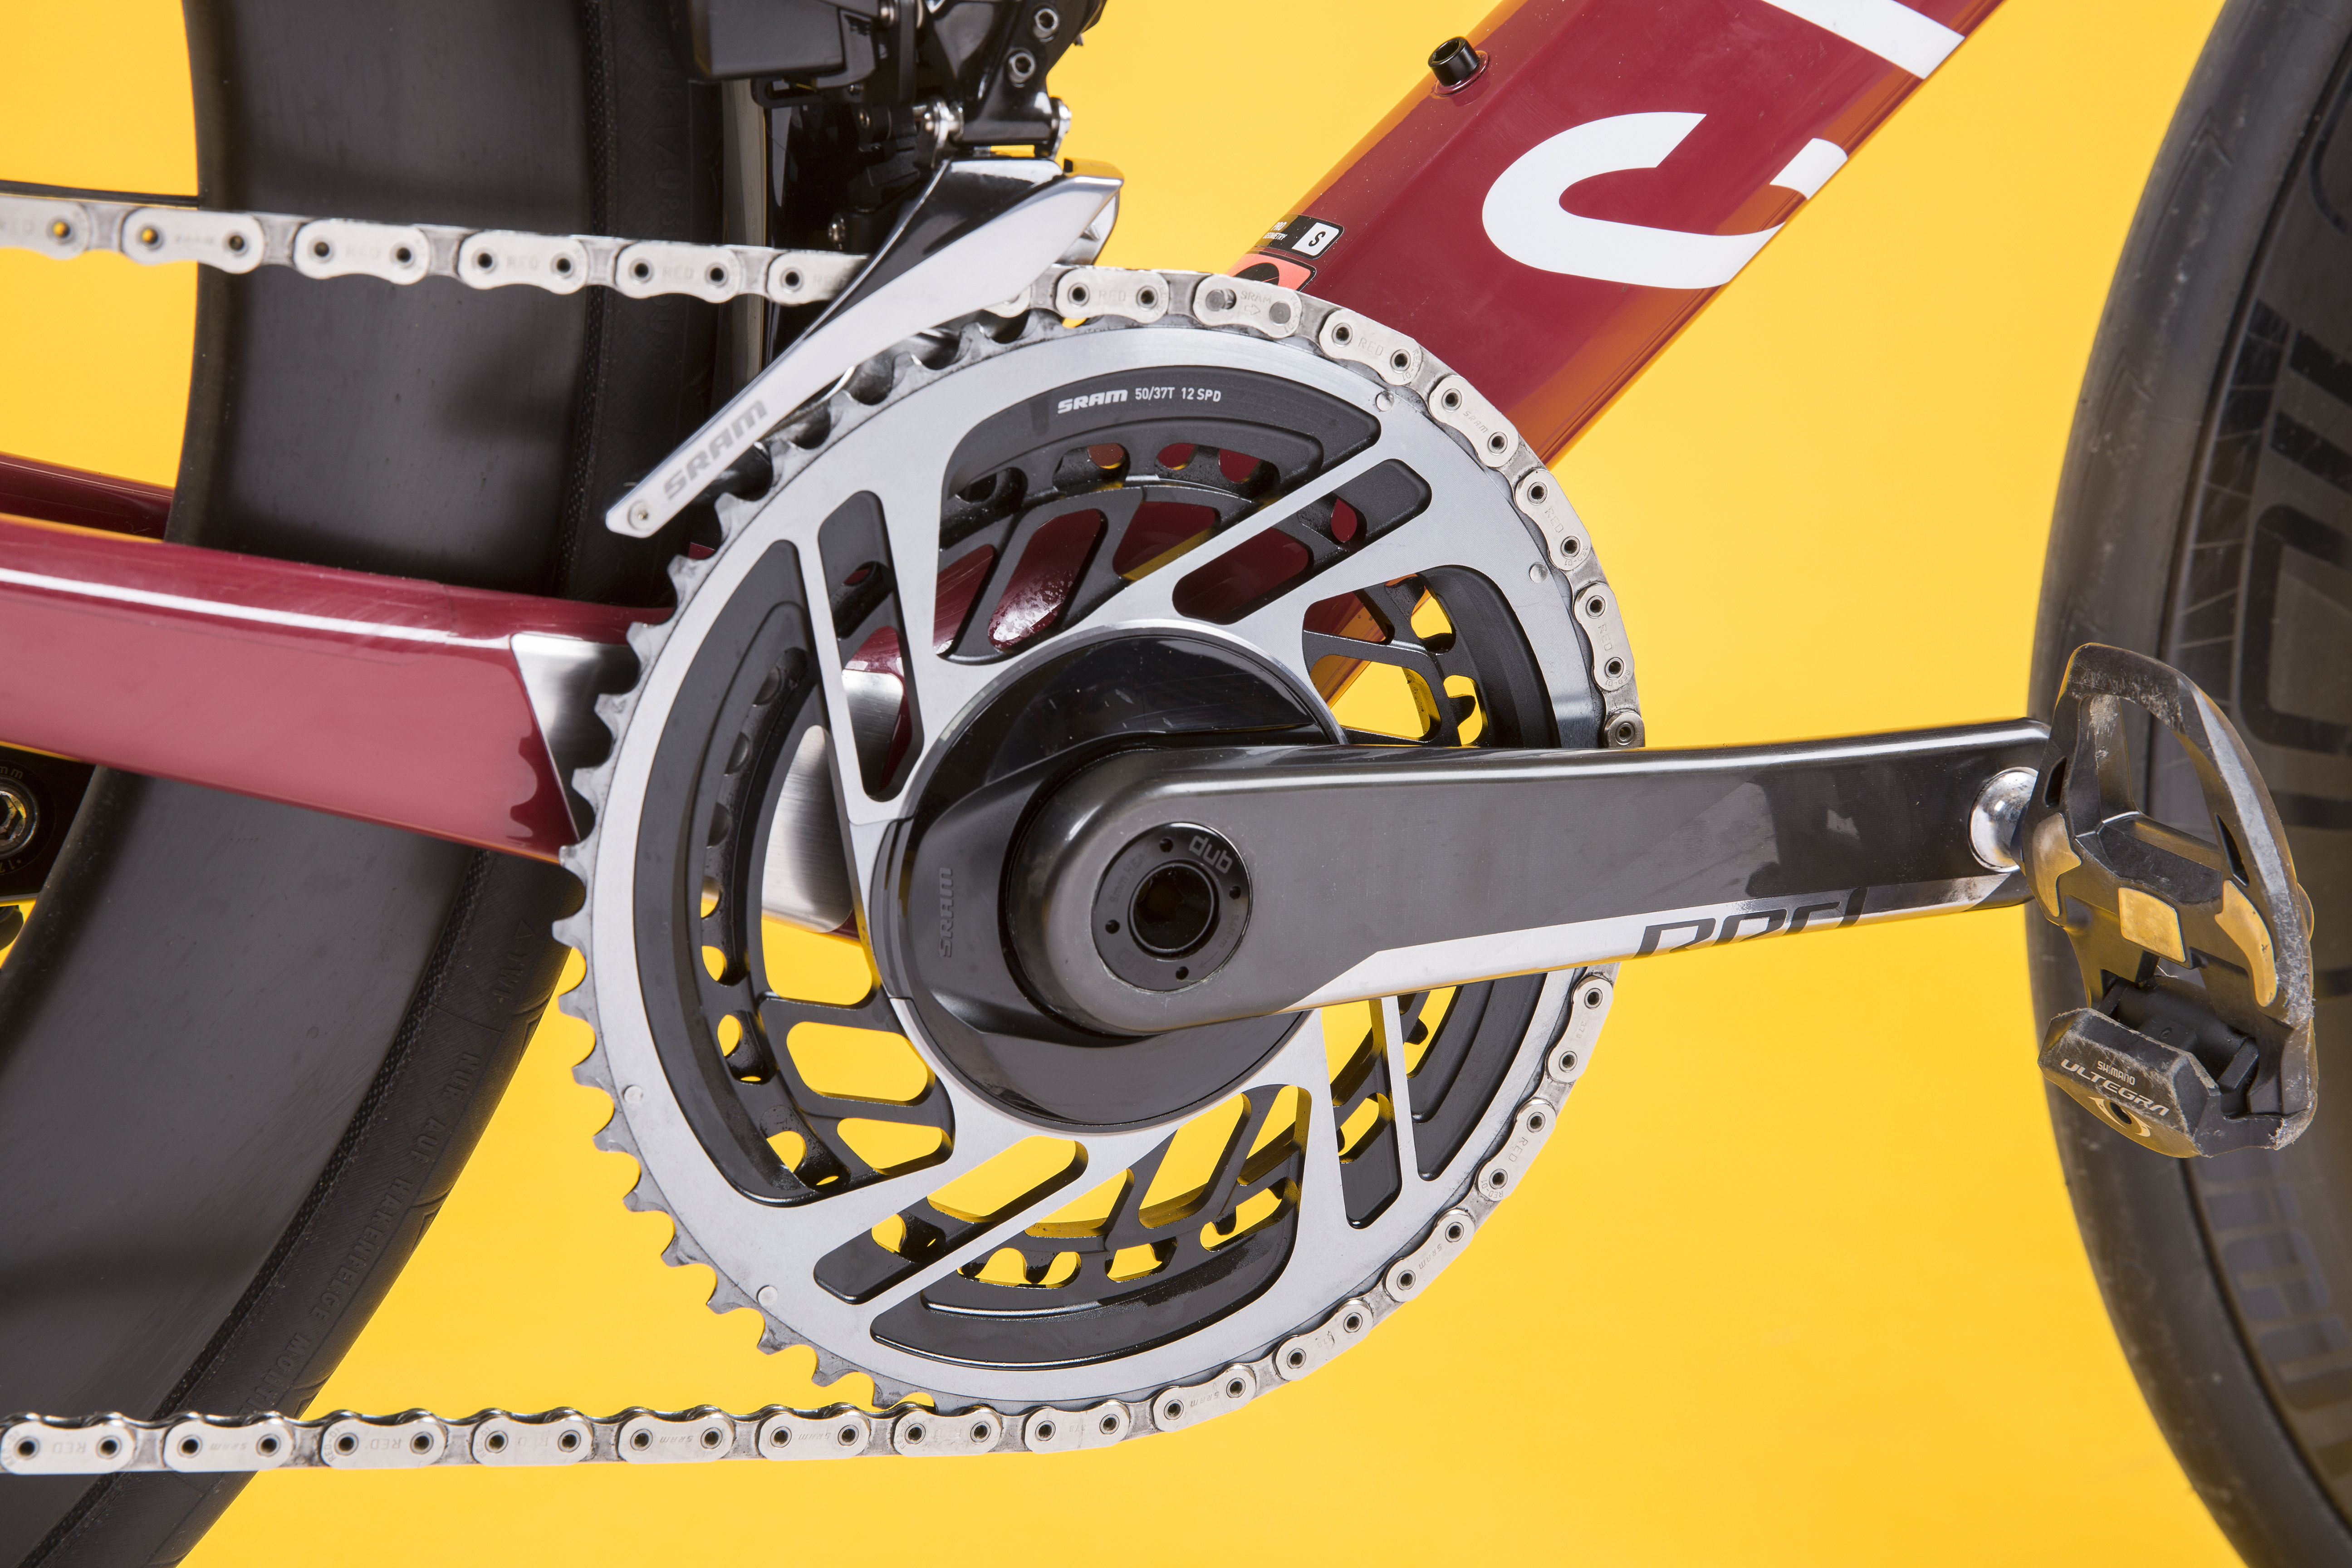 Shimano Dura-Ace Di2 v SRAM Red eTap AXS: Everything you need to